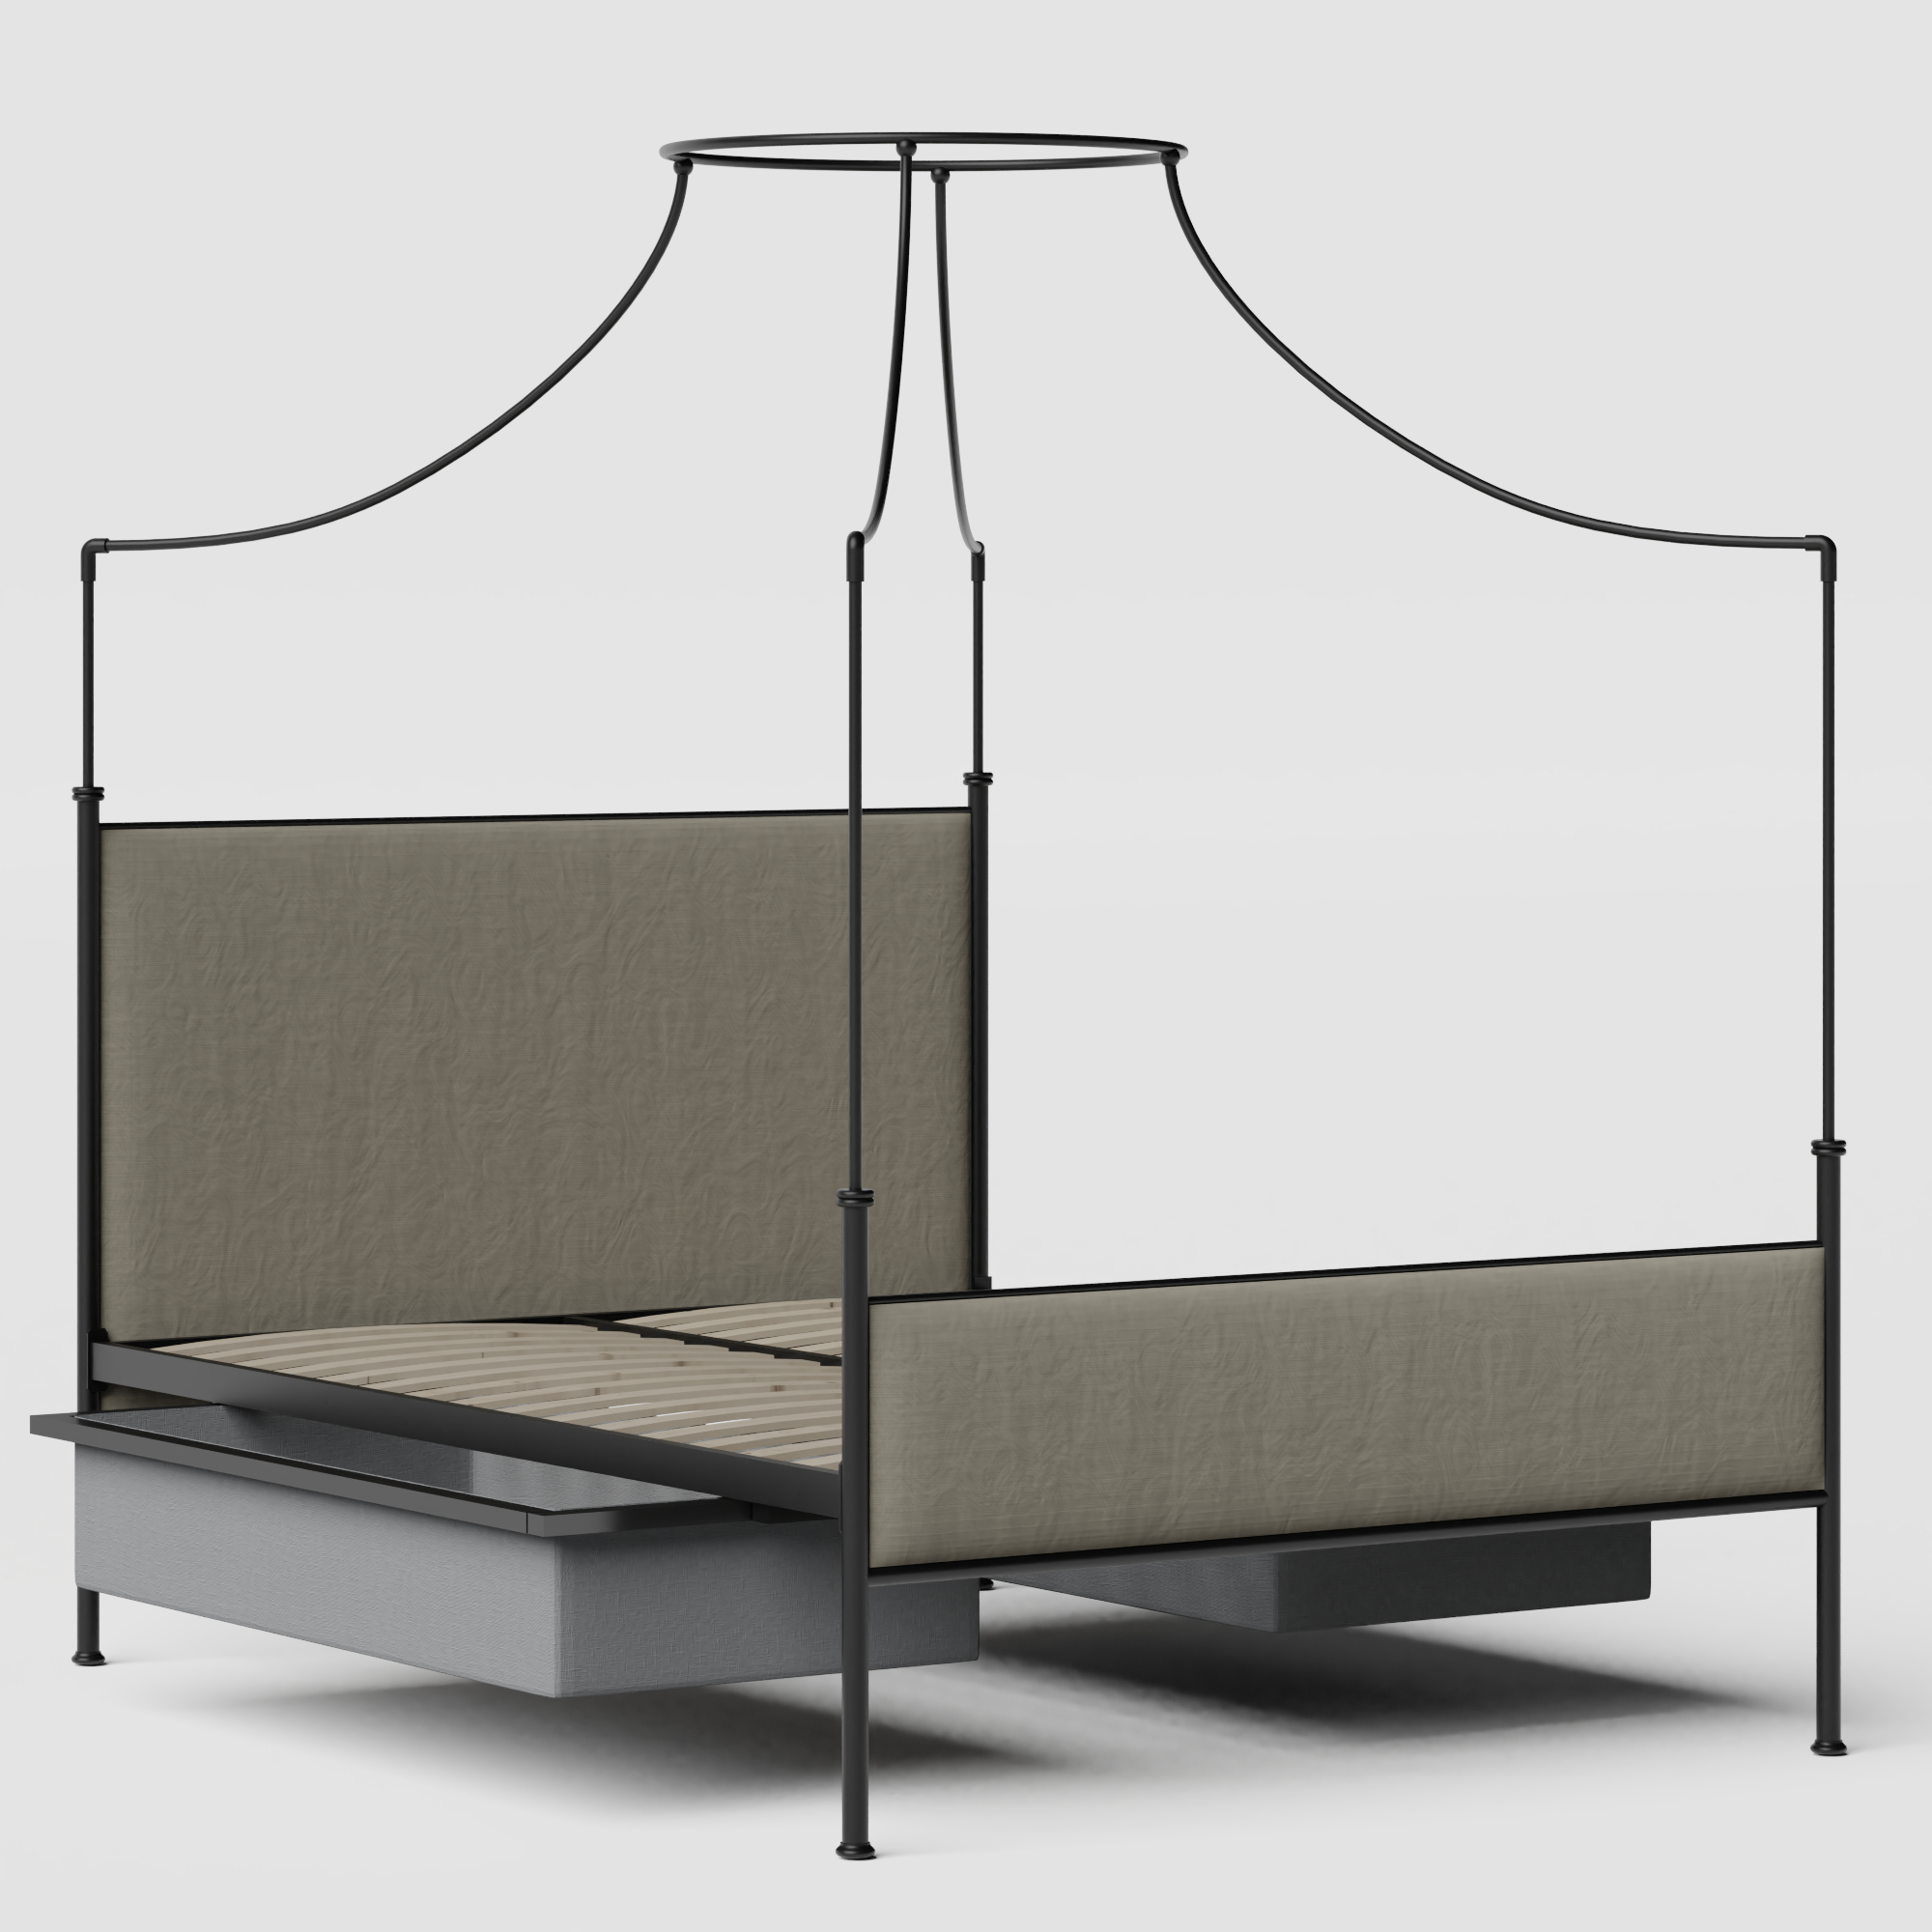 Waterloo iron/metal upholstered bed in black with drawers